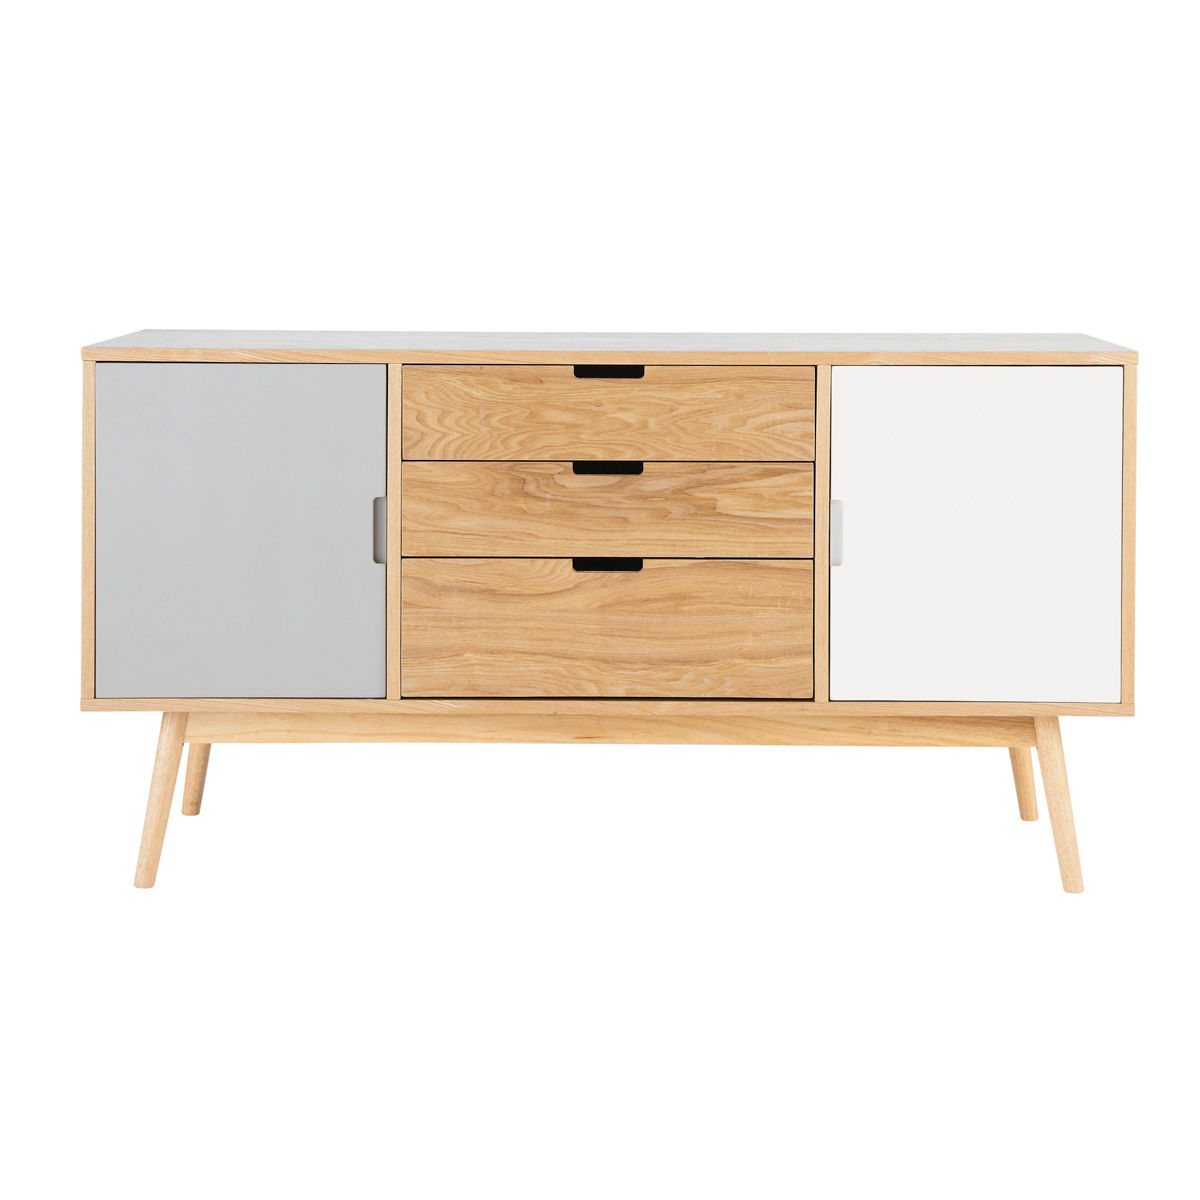 Maisons Du Monde In Widely Used Walnut Finish 2 Door/3 Drawer Sideboards (View 8 of 20)